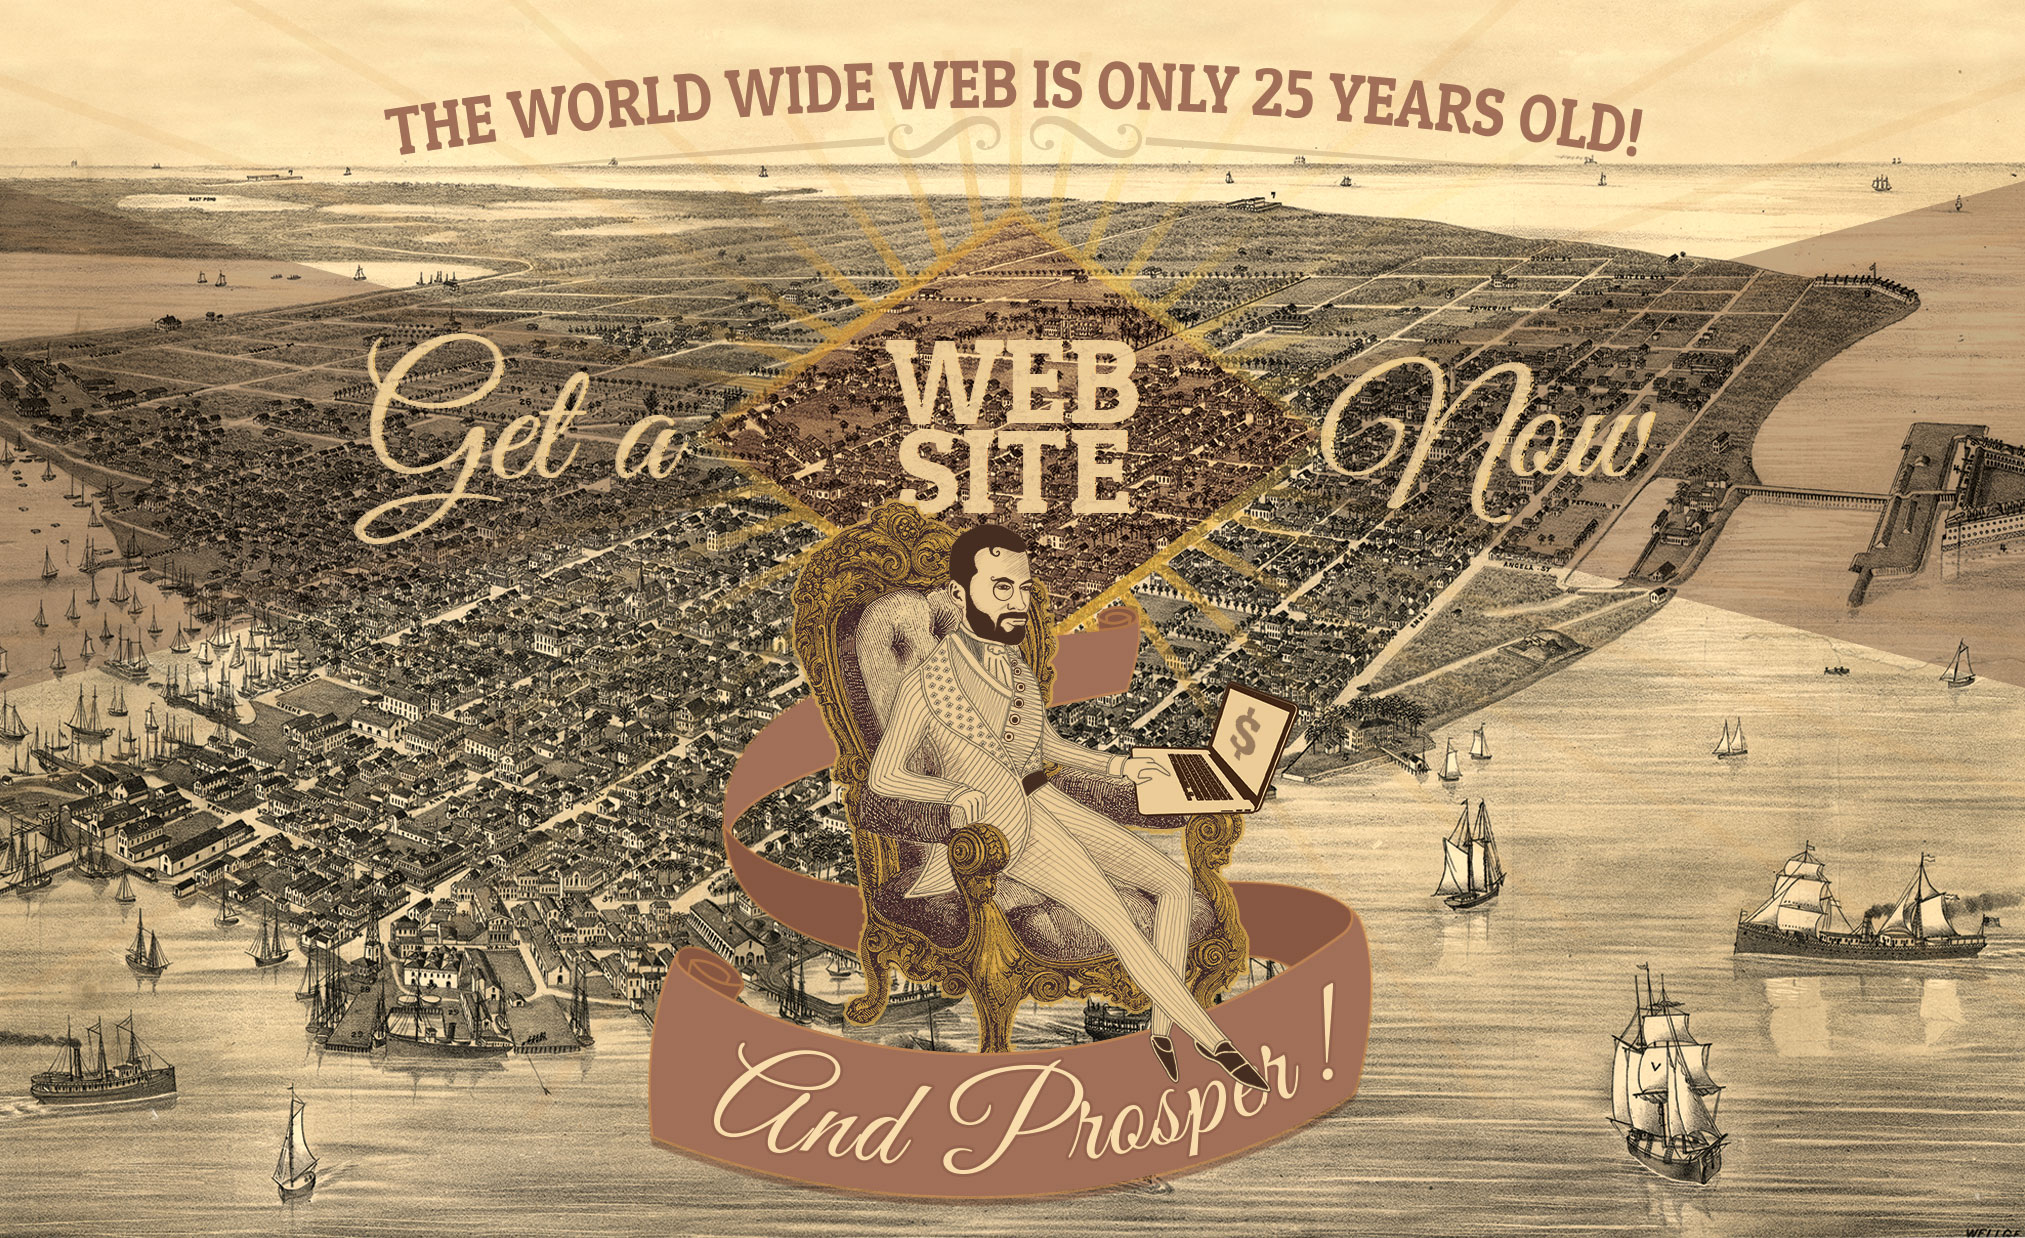 Map of old Key West promoting web design. The ad says: The World Wide Web is Only 25 Years Old! Get a Website Now and prosper. A rich looking man engraved in a illustration is siting in a fancy gold chair over Key West